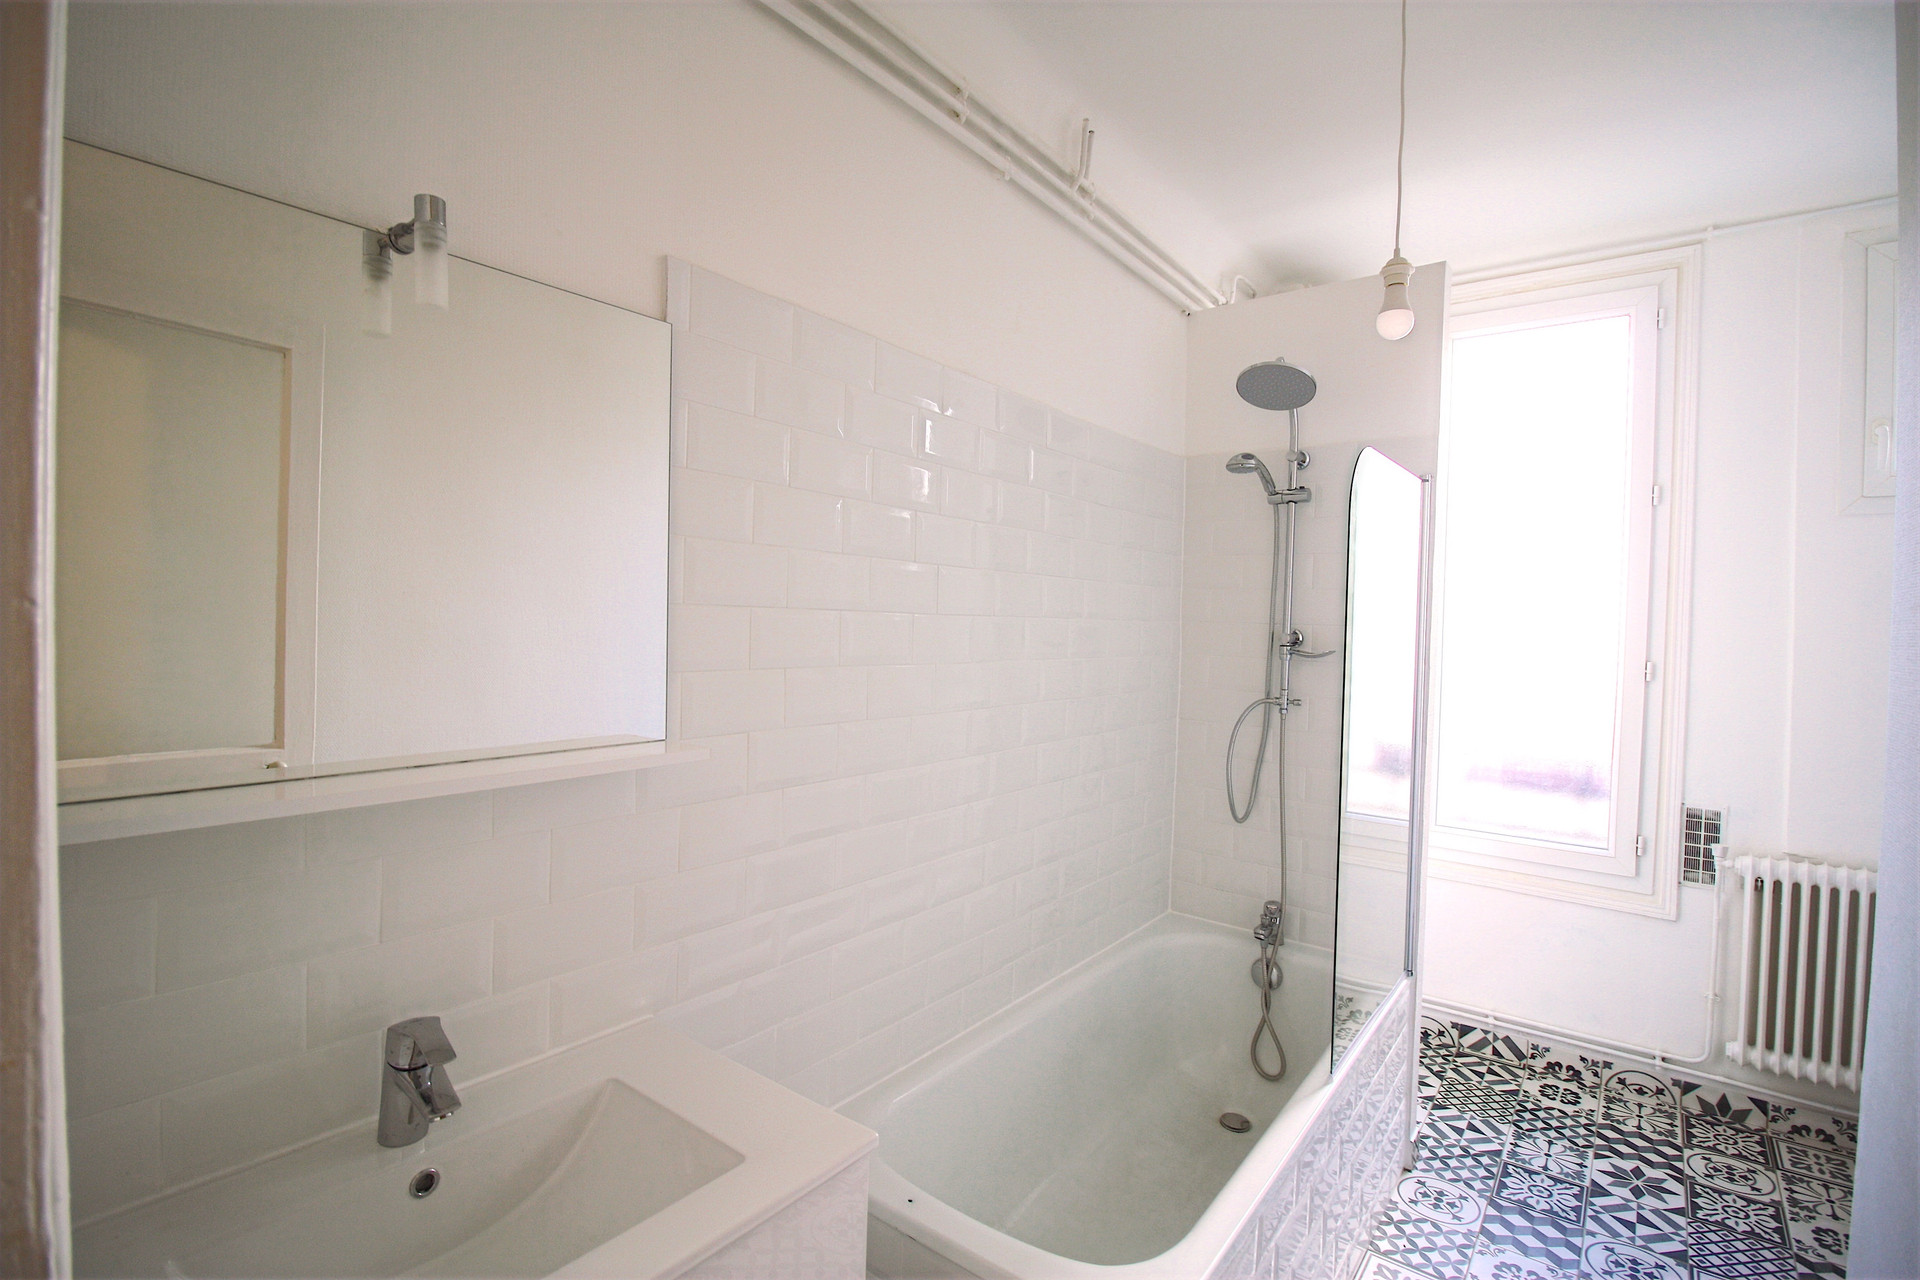 bathroom renovation for rental investment